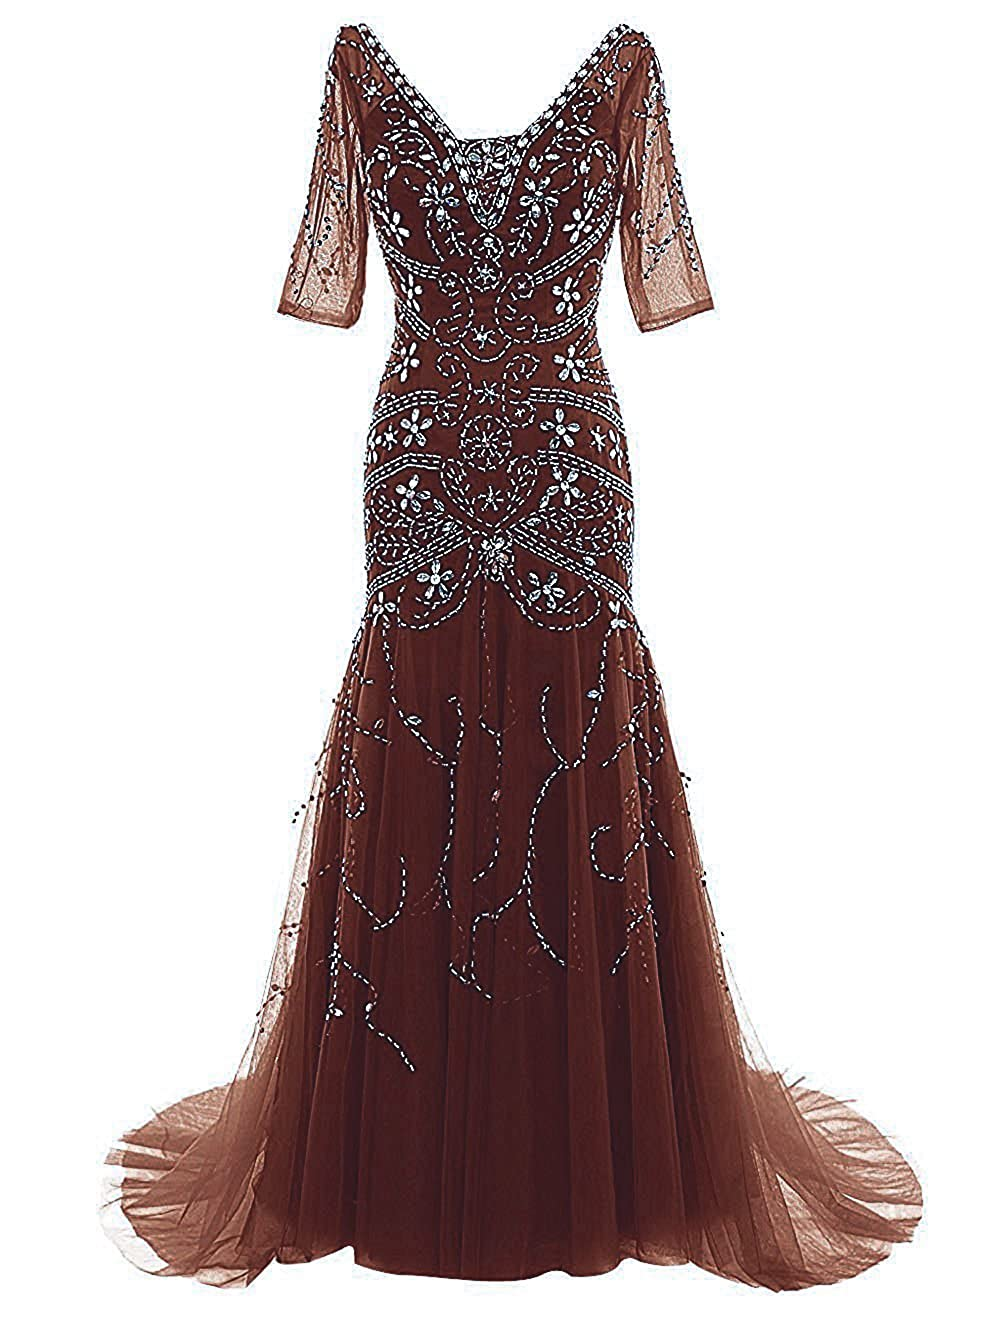 Chocolate Ellenhouse Mermaid Beaded Mother of Bride Dress with Sleeves Prom Gowns EL081